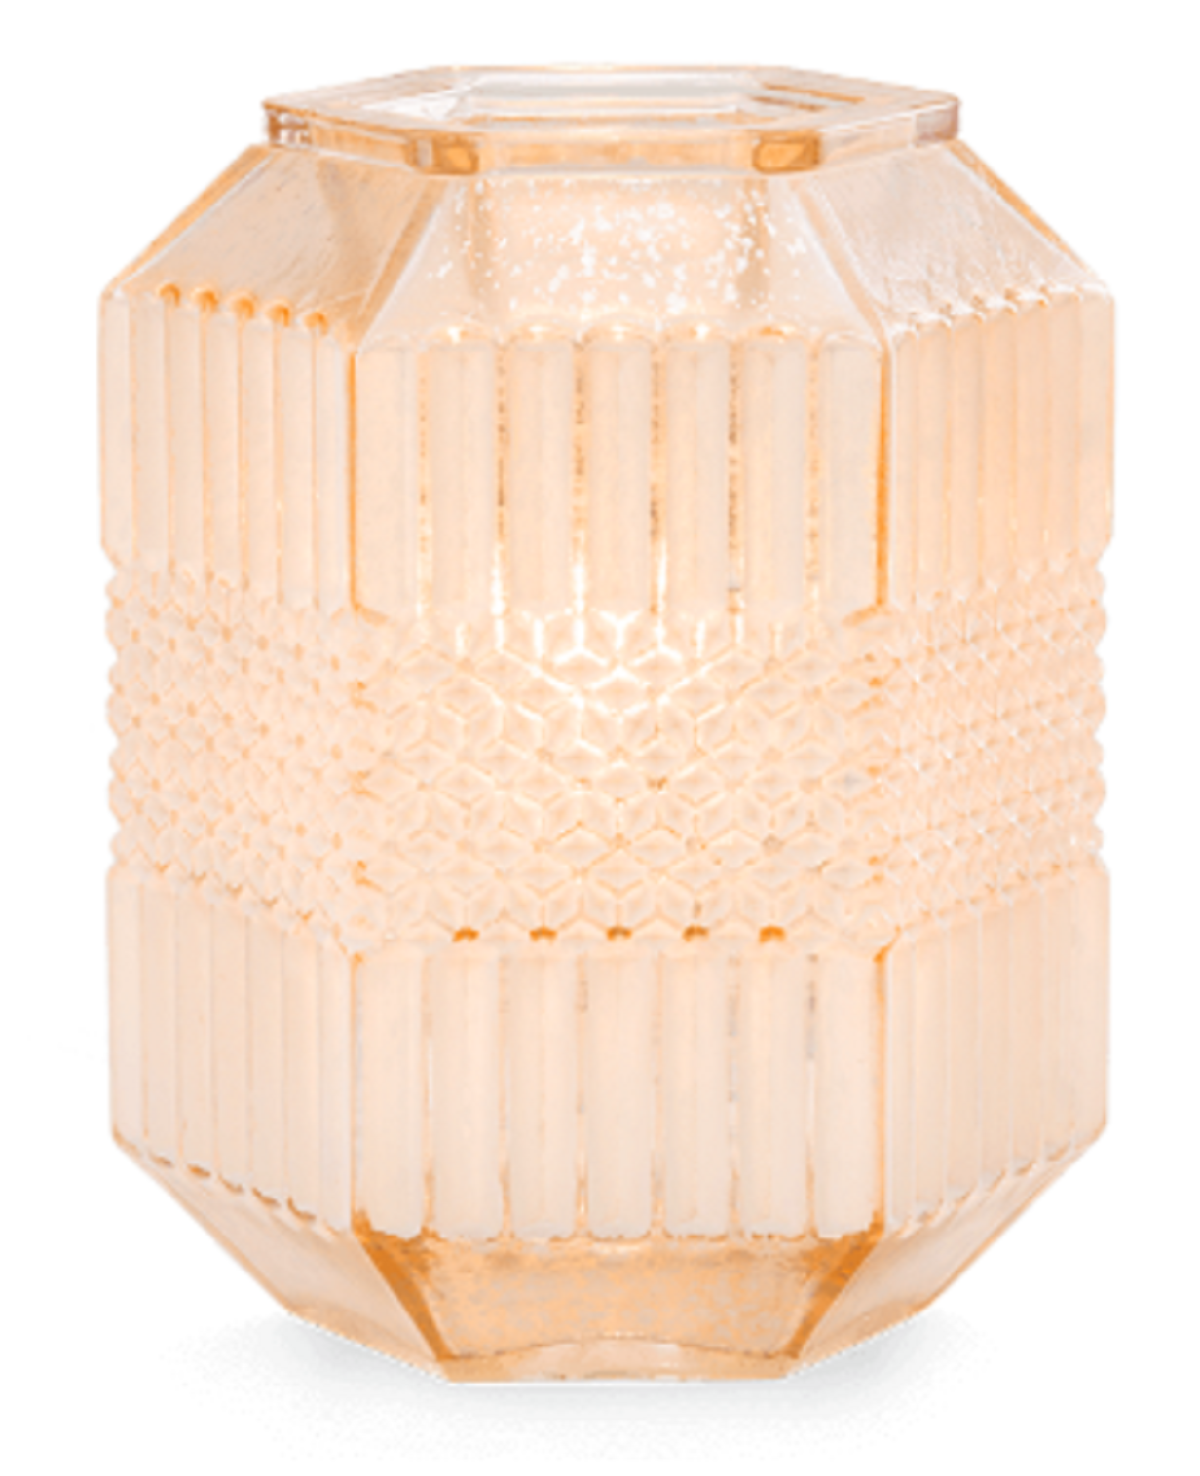 Authentic Scentsy Elegance Lamp Wax Warmer